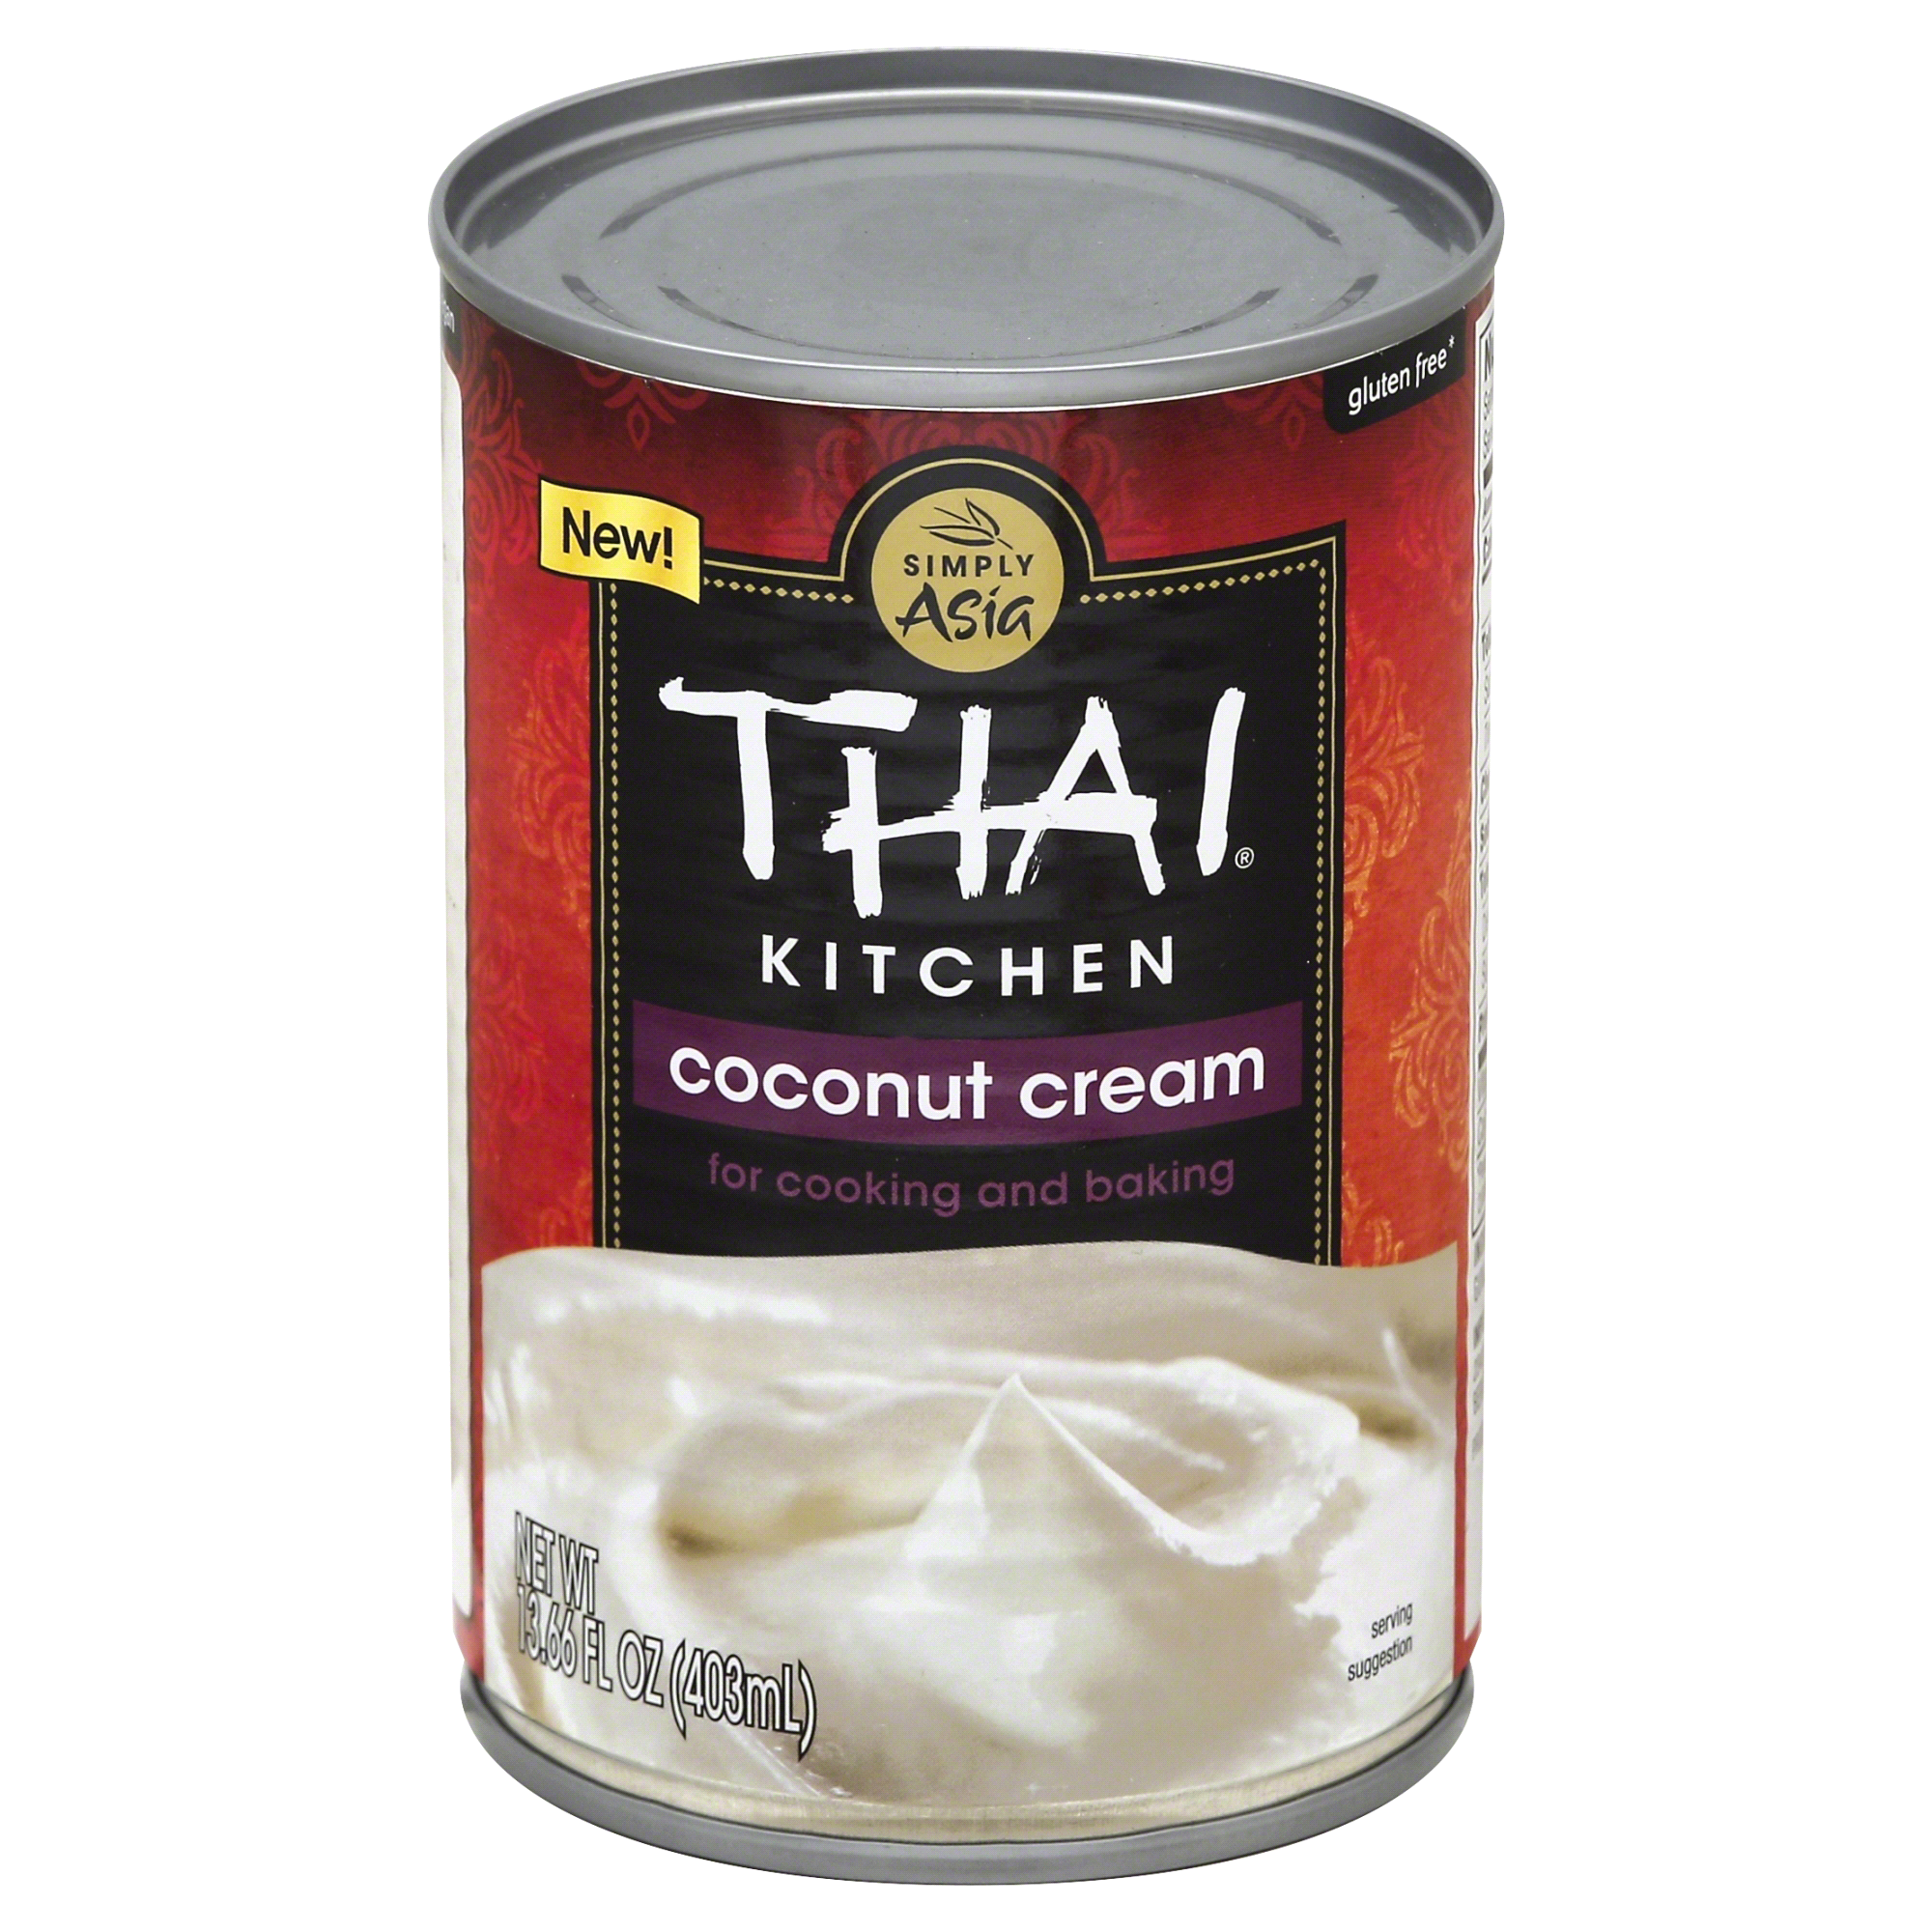 Thai Kitchen Lite Coconut Milk Stunning Thai Kitchen Coconut Cream 13.7 Oz  Meijer Inspiration